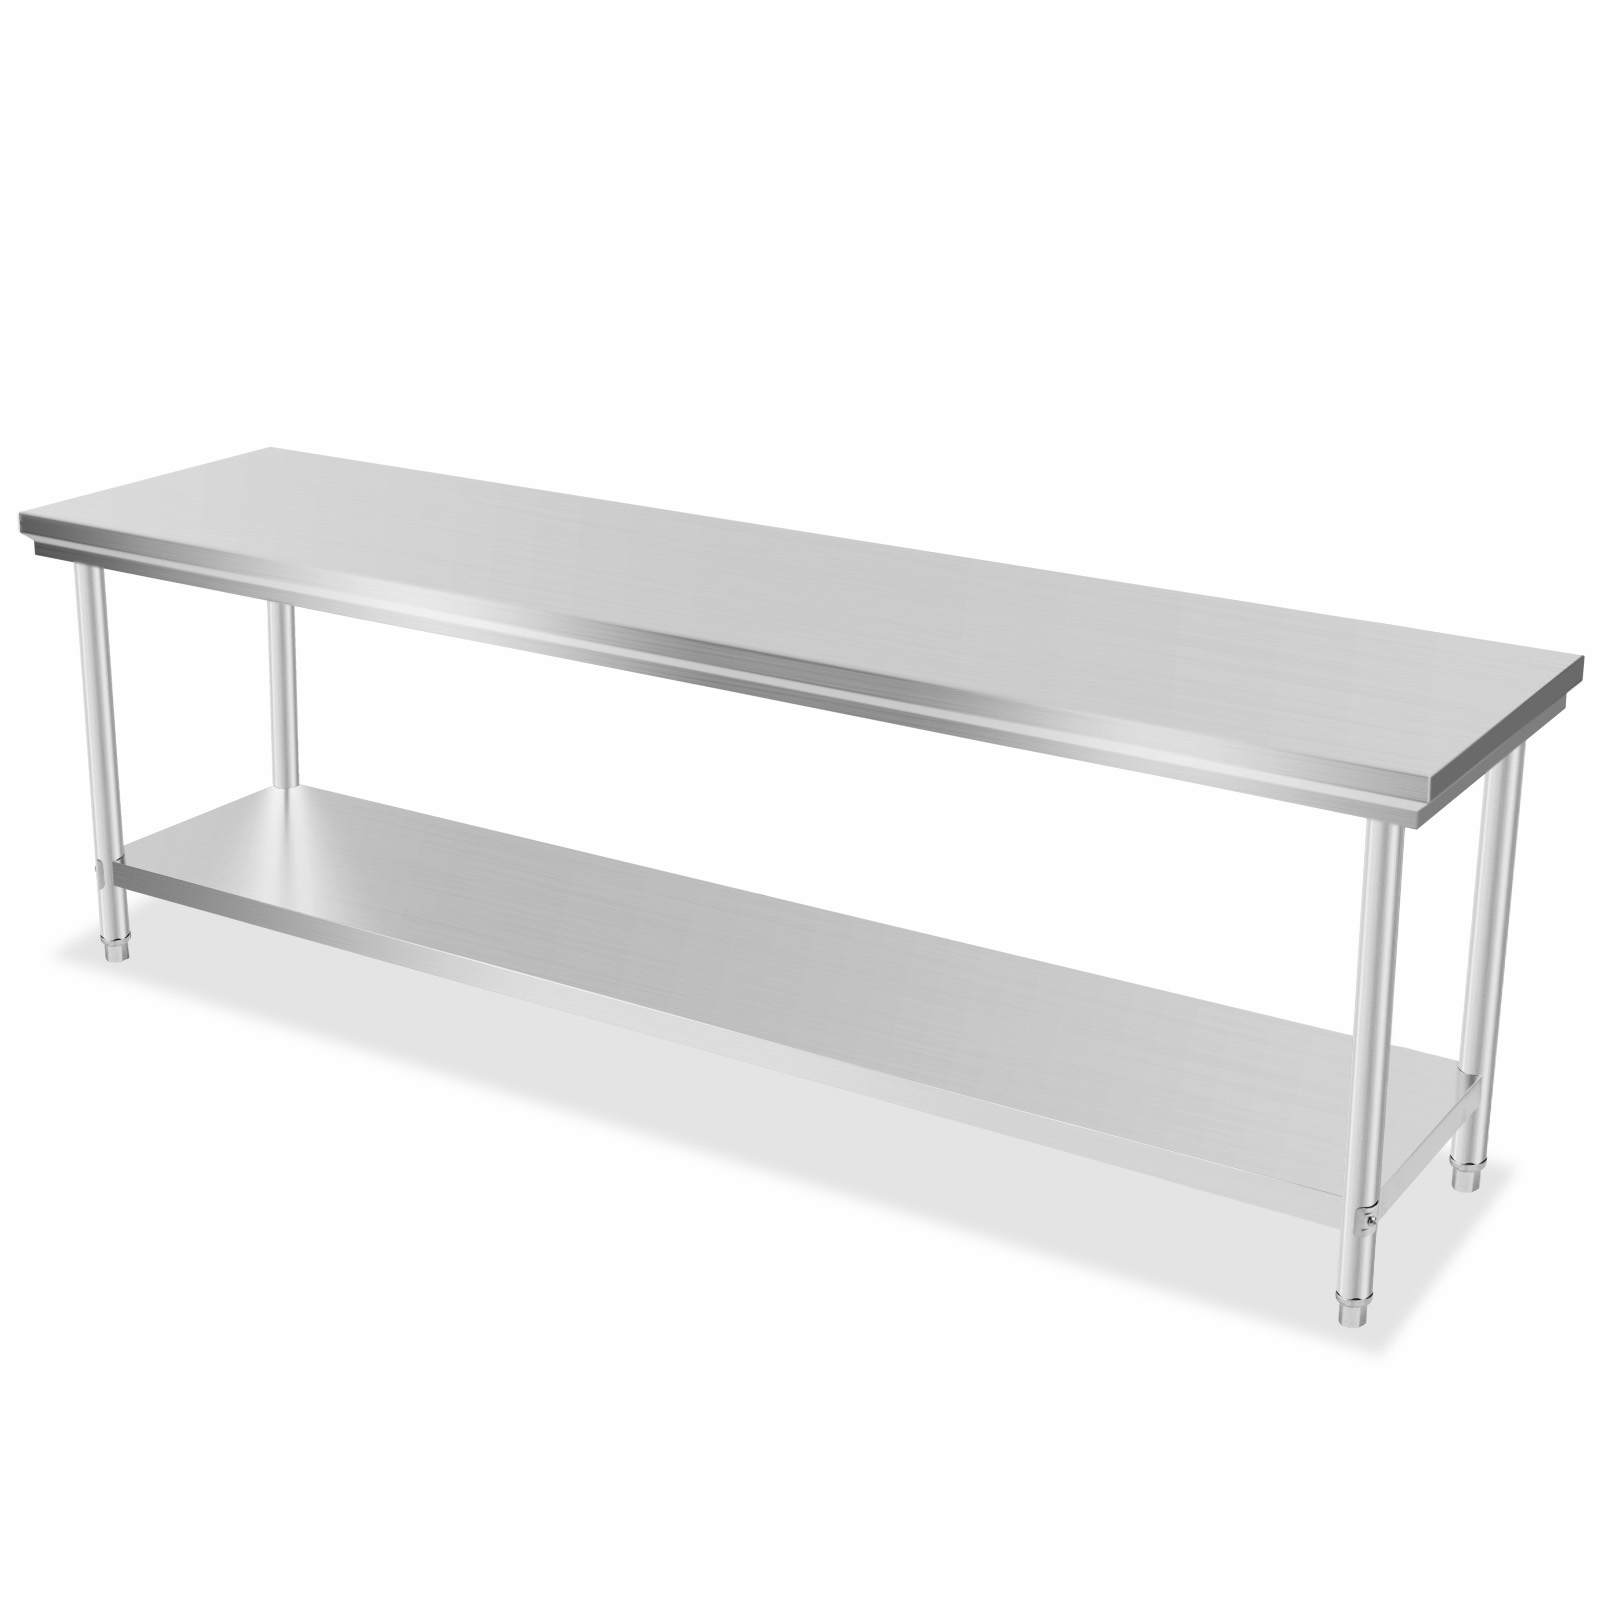 Commercial Stainless Steel Work Bench Food Prep Kitchen Table 60x240cm Nsf Ebay